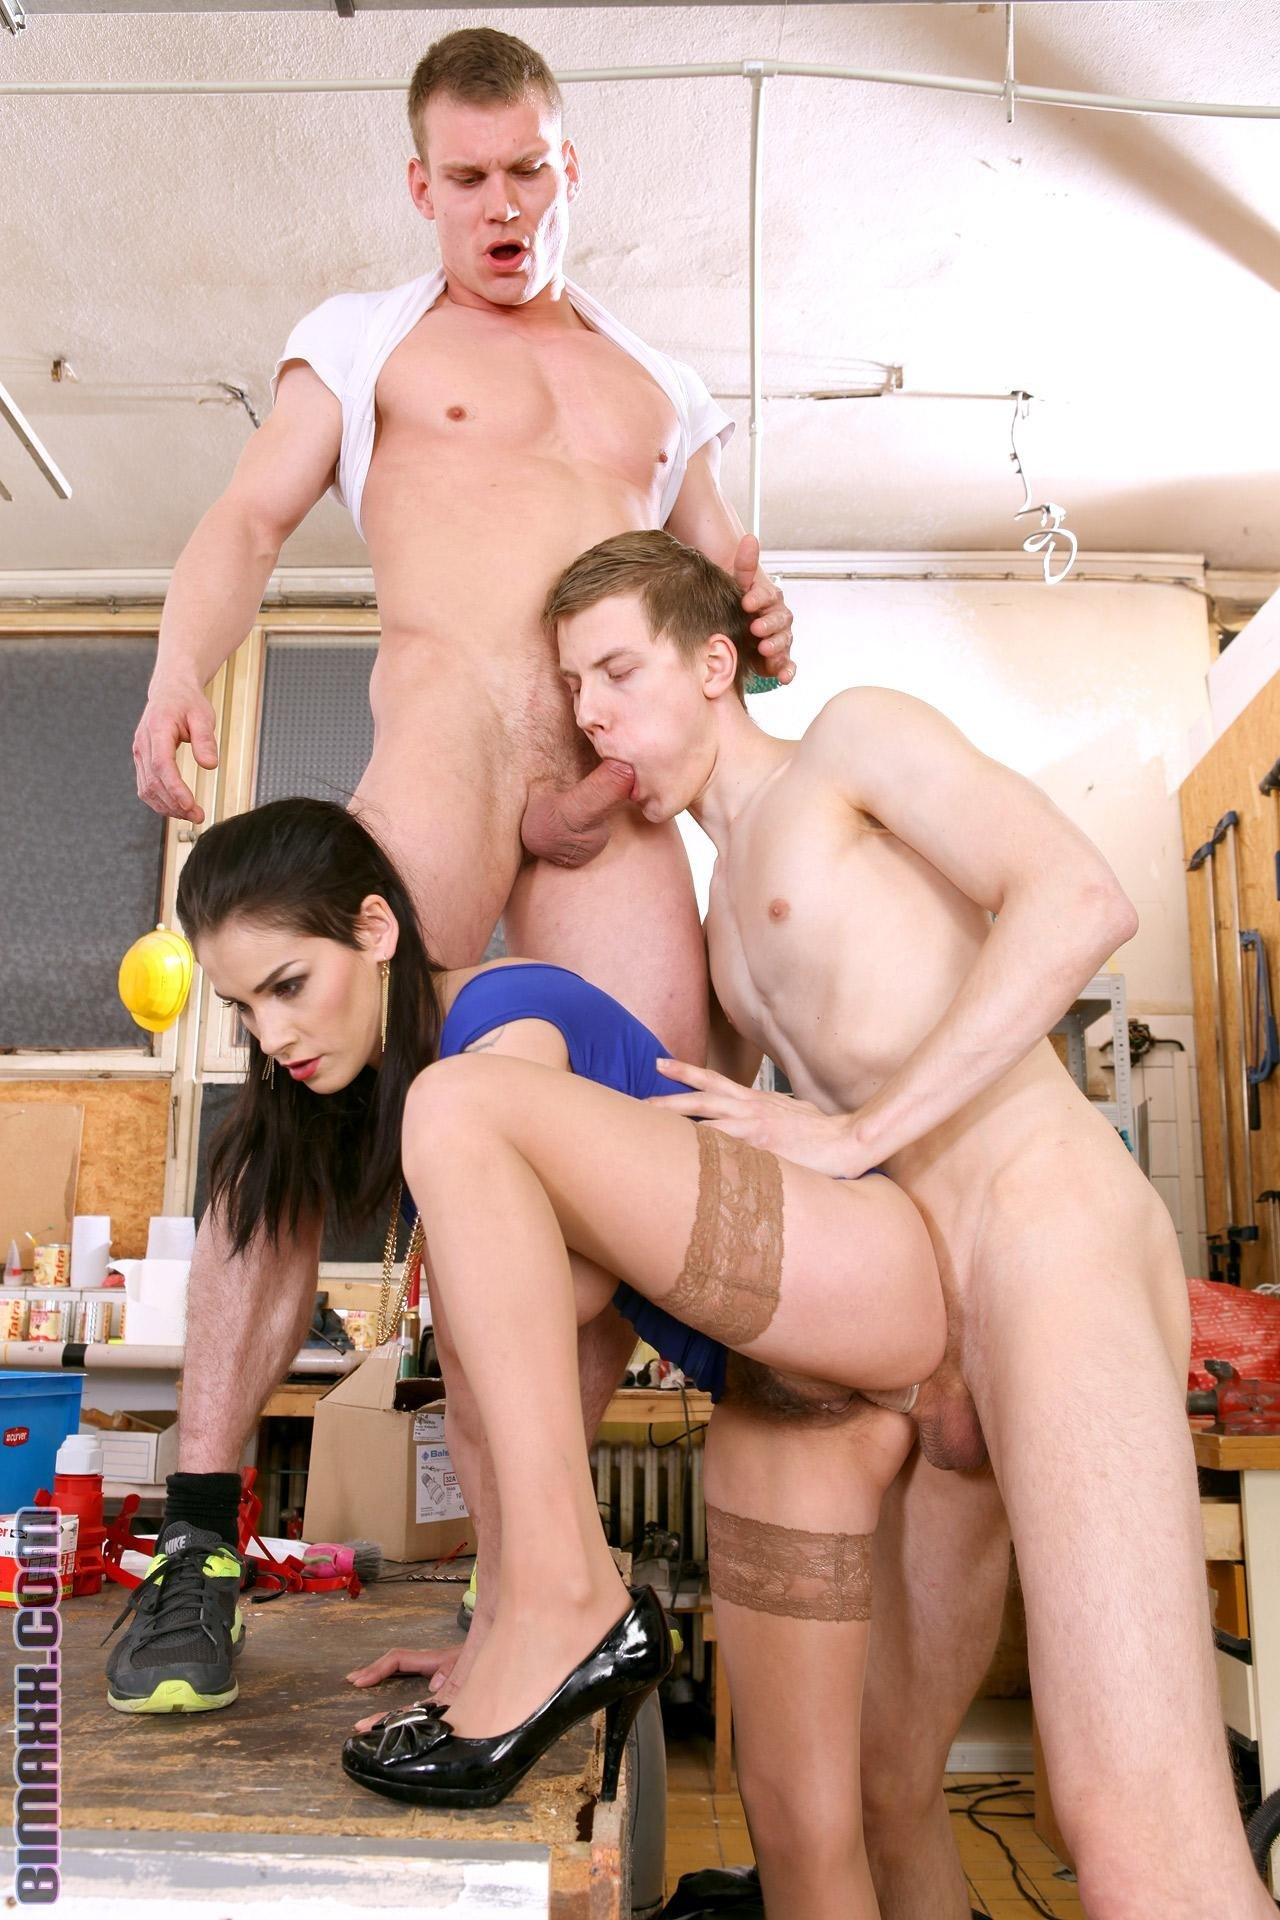 Bi Step bros tag-teaming girlfriend - Eveline Dellai, Charlie Dean and Alessandro Katz